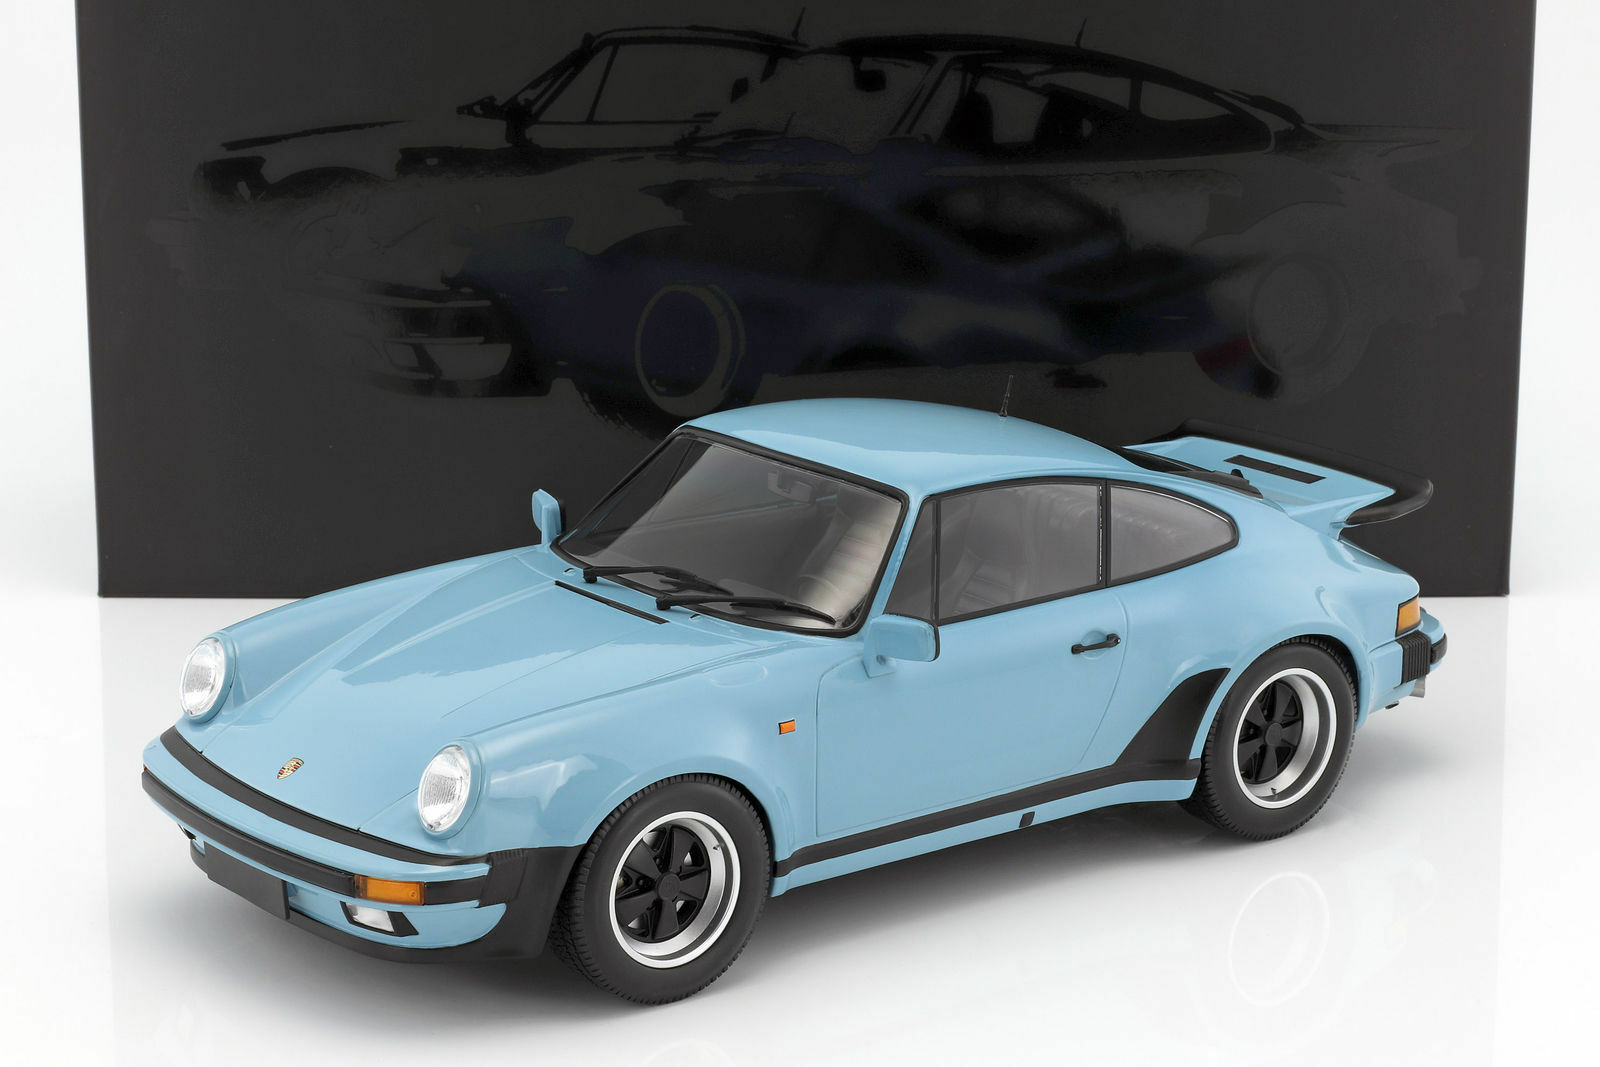 MINICHAMPS 1977 Porsche 911 Turbo Gulf bluee 1 12 Large Car Brand New SUPER NICE